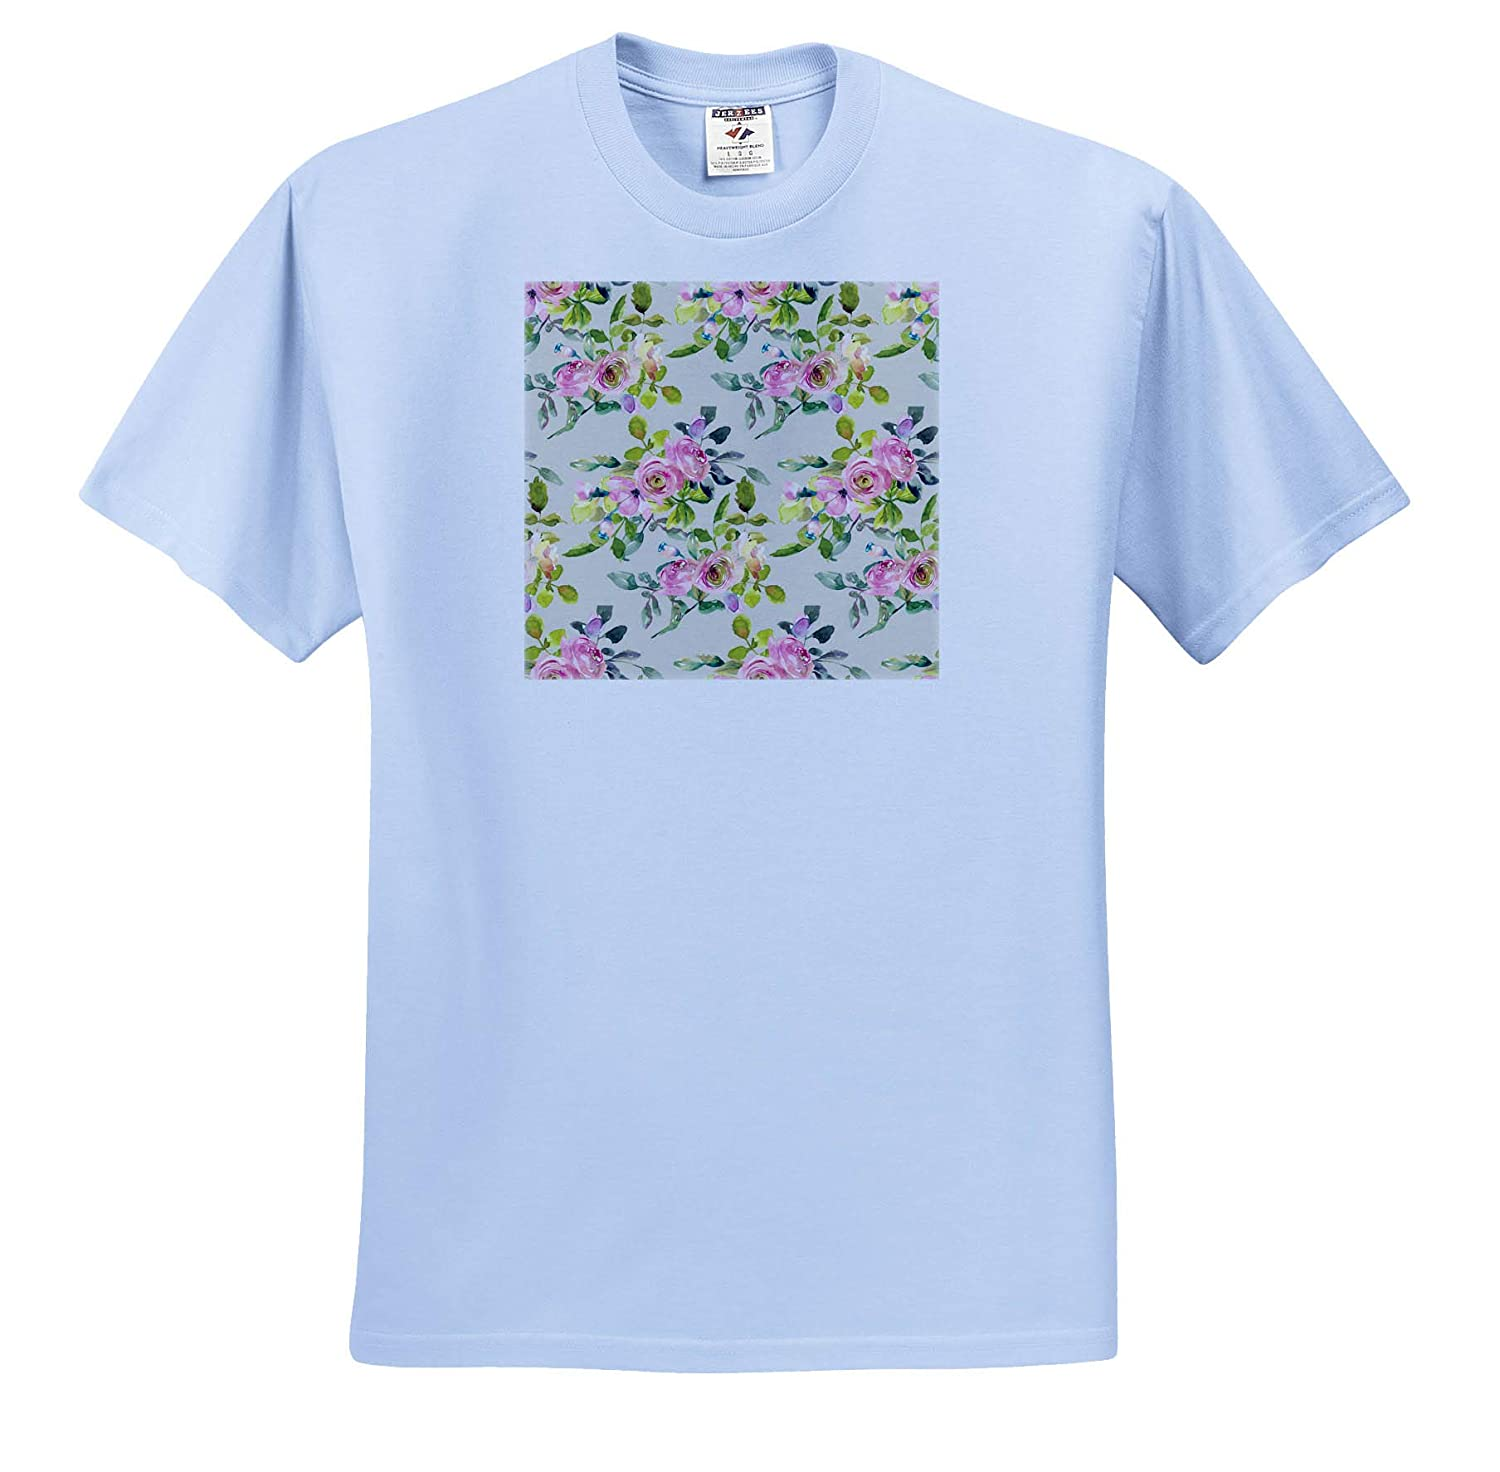 Adult T-Shirt XL 3dRose Anne Marie Baugh Patterns Pretty Pink Image of Watercolor Roses Pattern ts/_316234